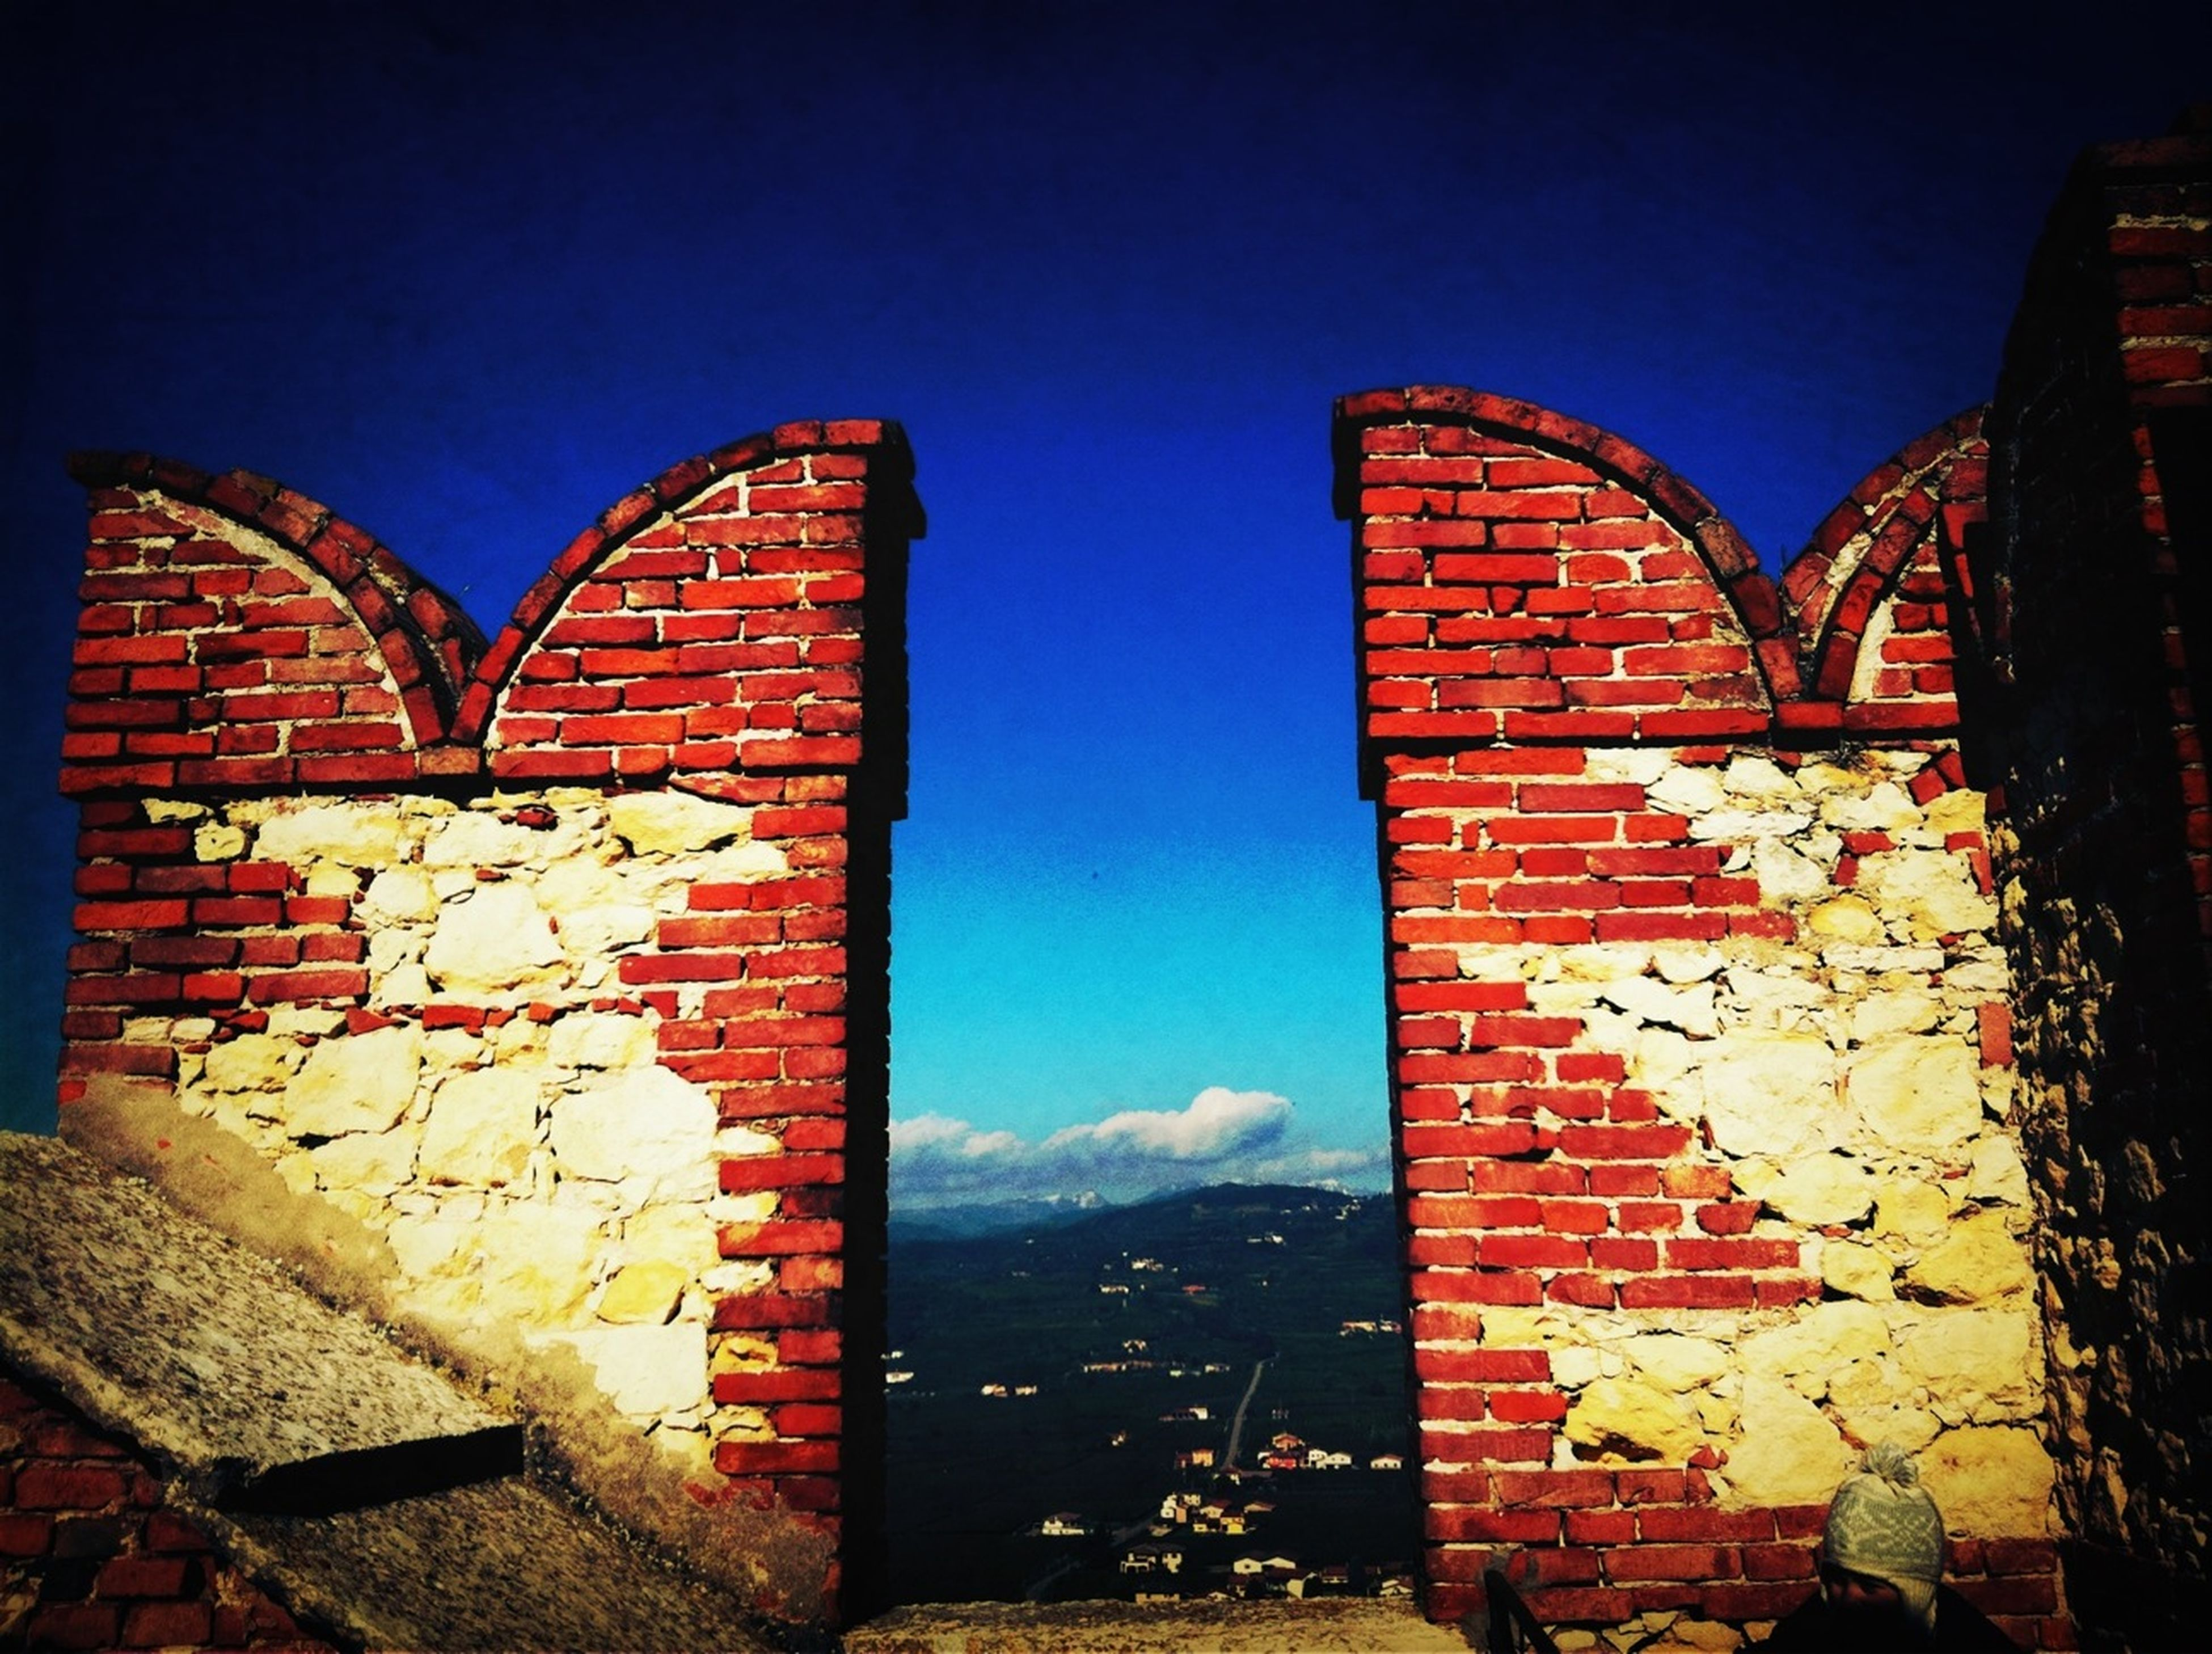 architecture, built structure, building exterior, brick wall, blue, wall - building feature, window, clear sky, house, auto post production filter, sky, wall, stone wall, day, residential structure, no people, outdoors, low angle view, sunlight, building